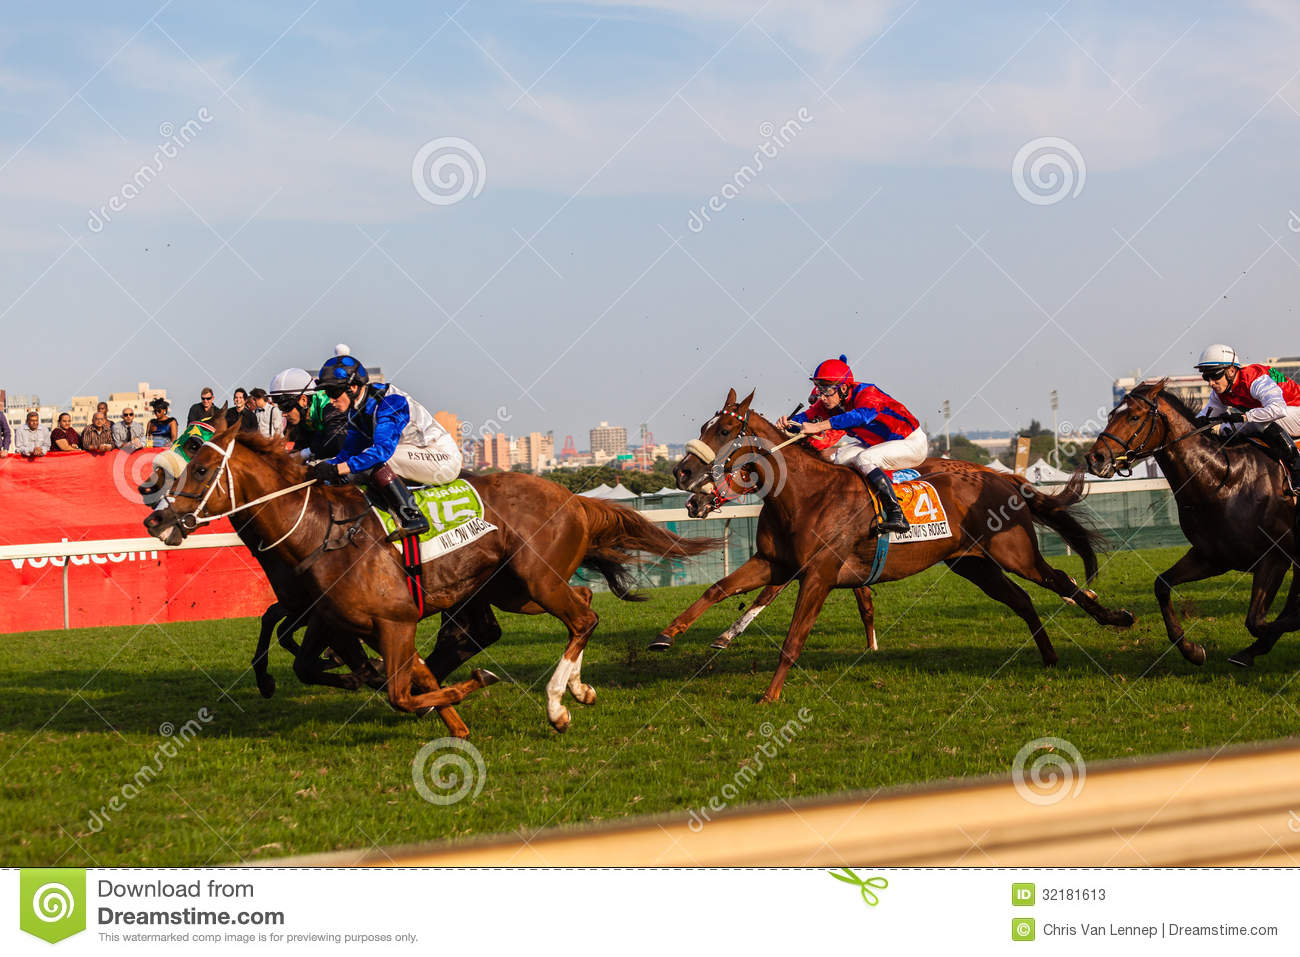 Horse racing results and betting line hkjc football betting results of the belmont